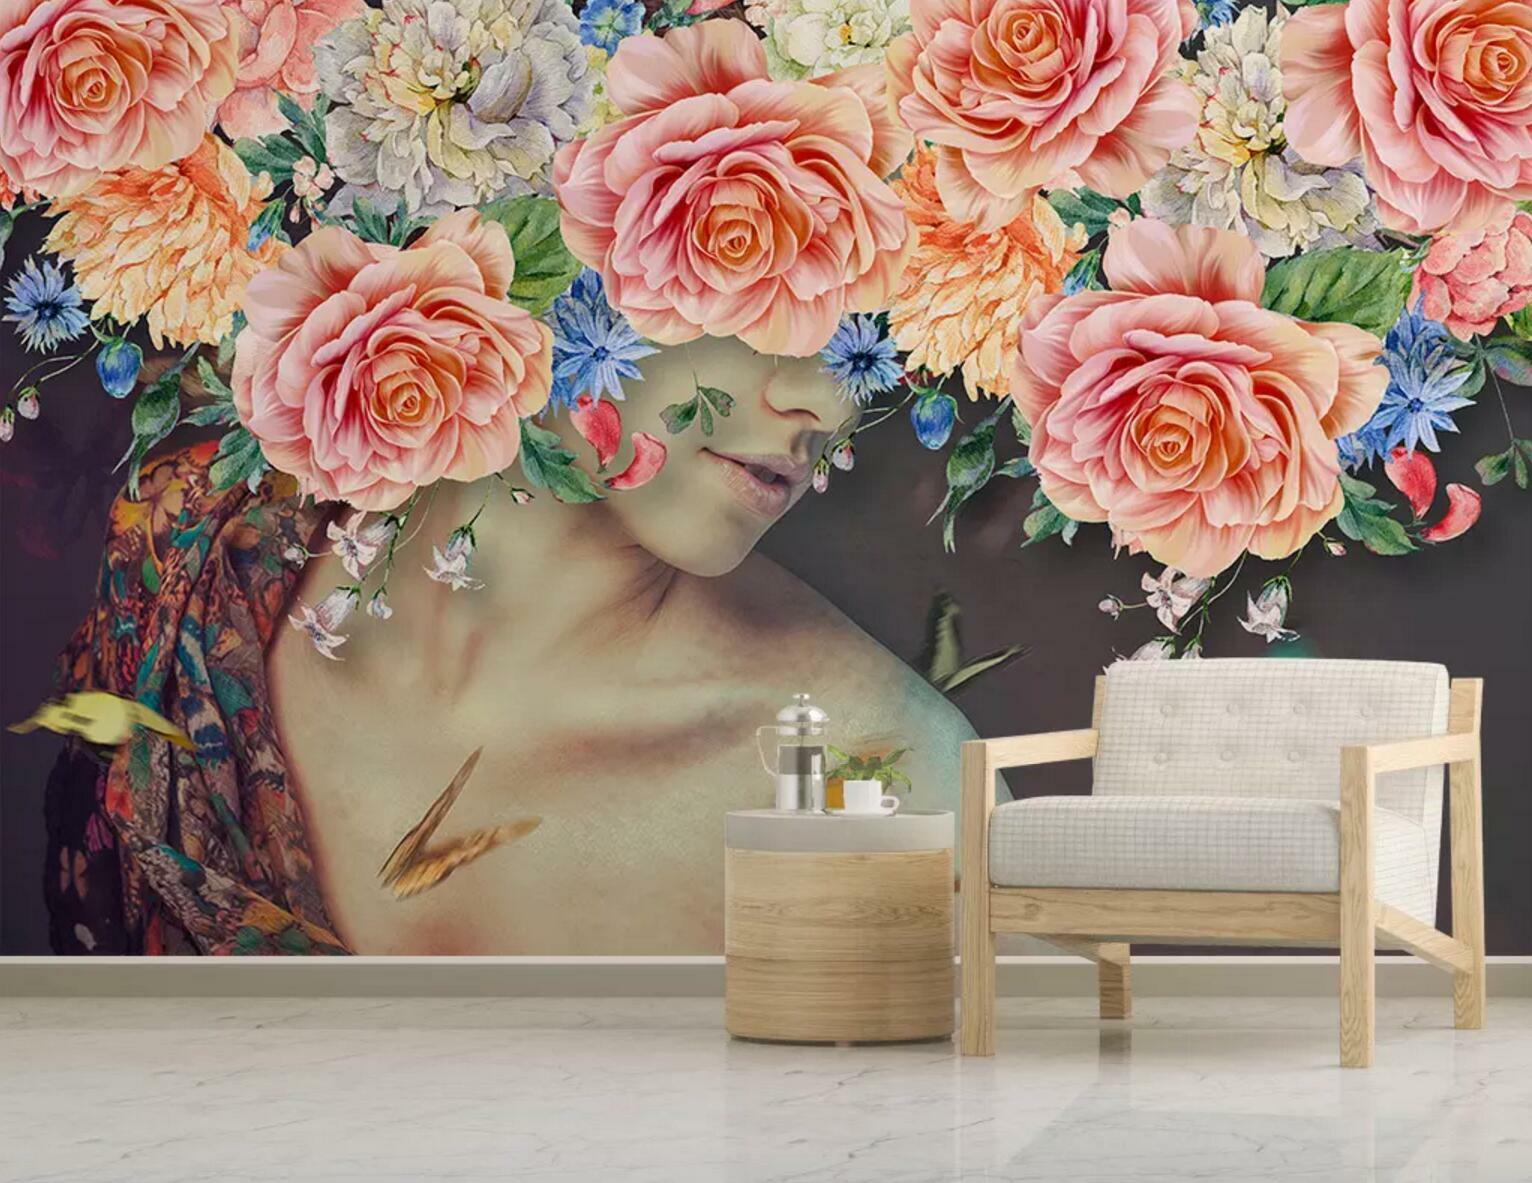 3D Lady Body Flower 5 Wall Paper Exclusive MXY Wallpaper Mural Decal Indoor wall